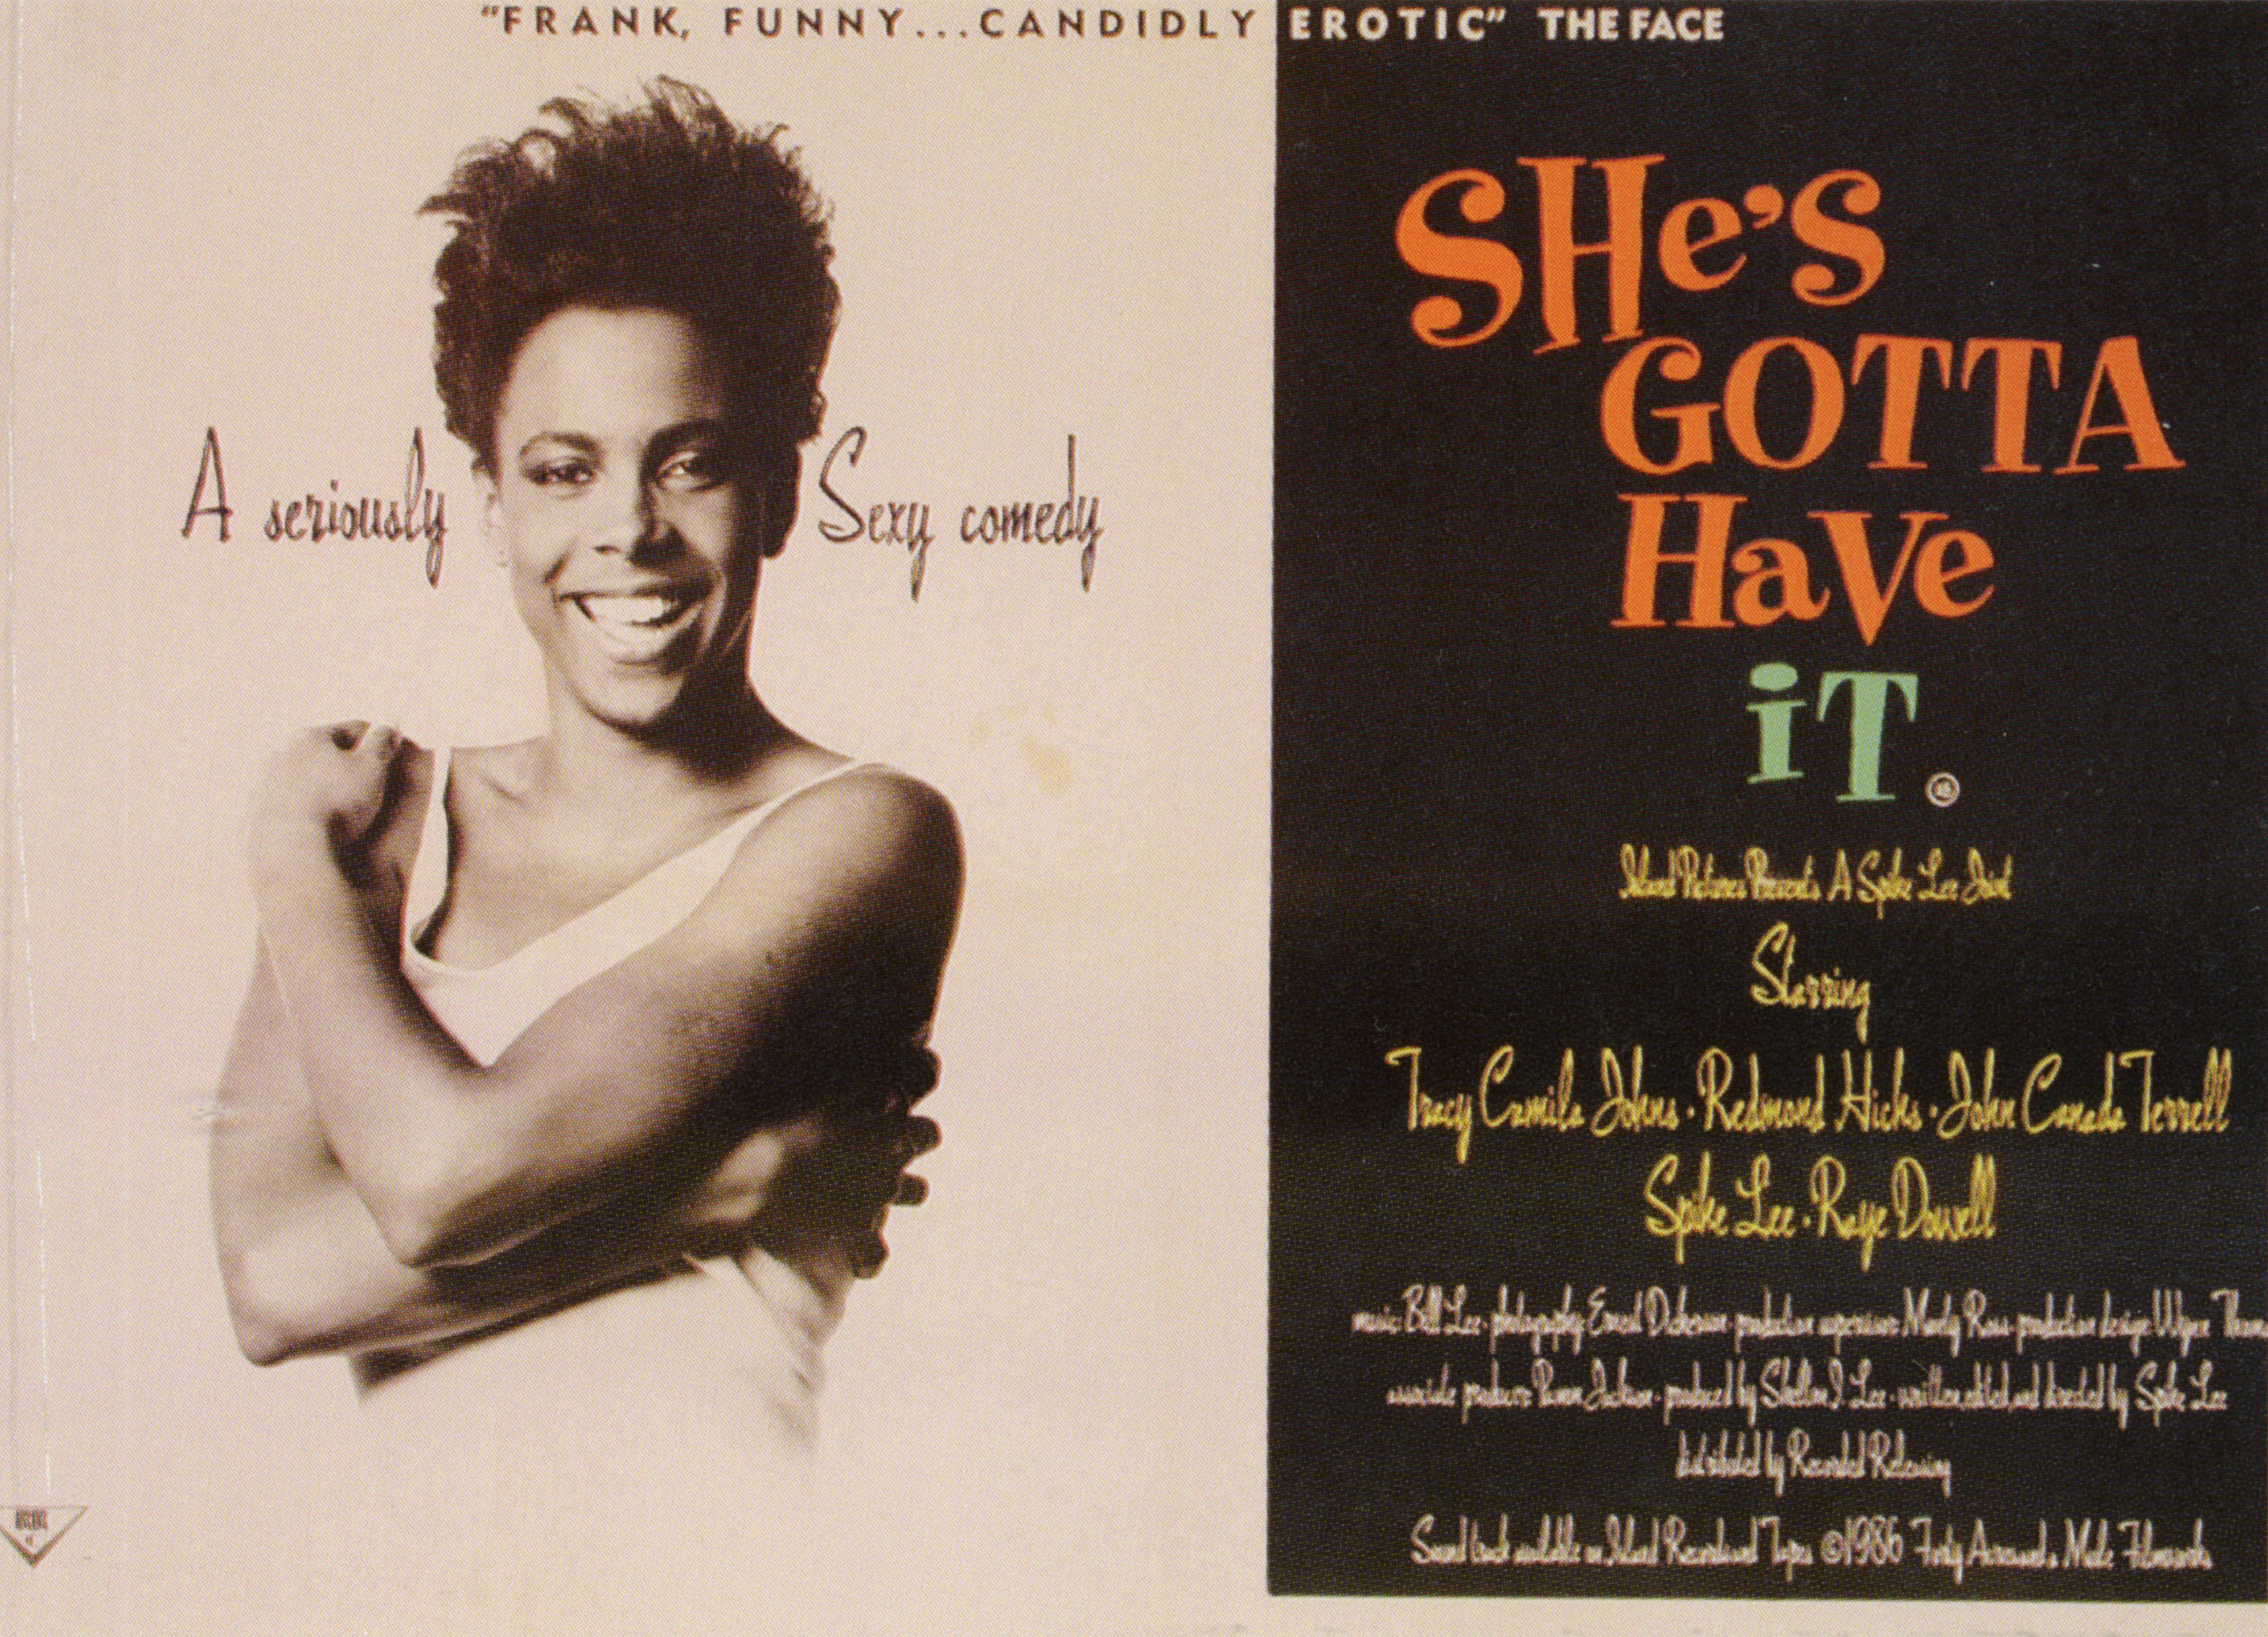 She's Gotta Have It (1986); Director Spike Lee is working on the series with Netflix, which has ordered 10 episodes of a contemporary update of the movie about a twenty-something Brooklyn artist, originally played by Tracy Camilla Johns.